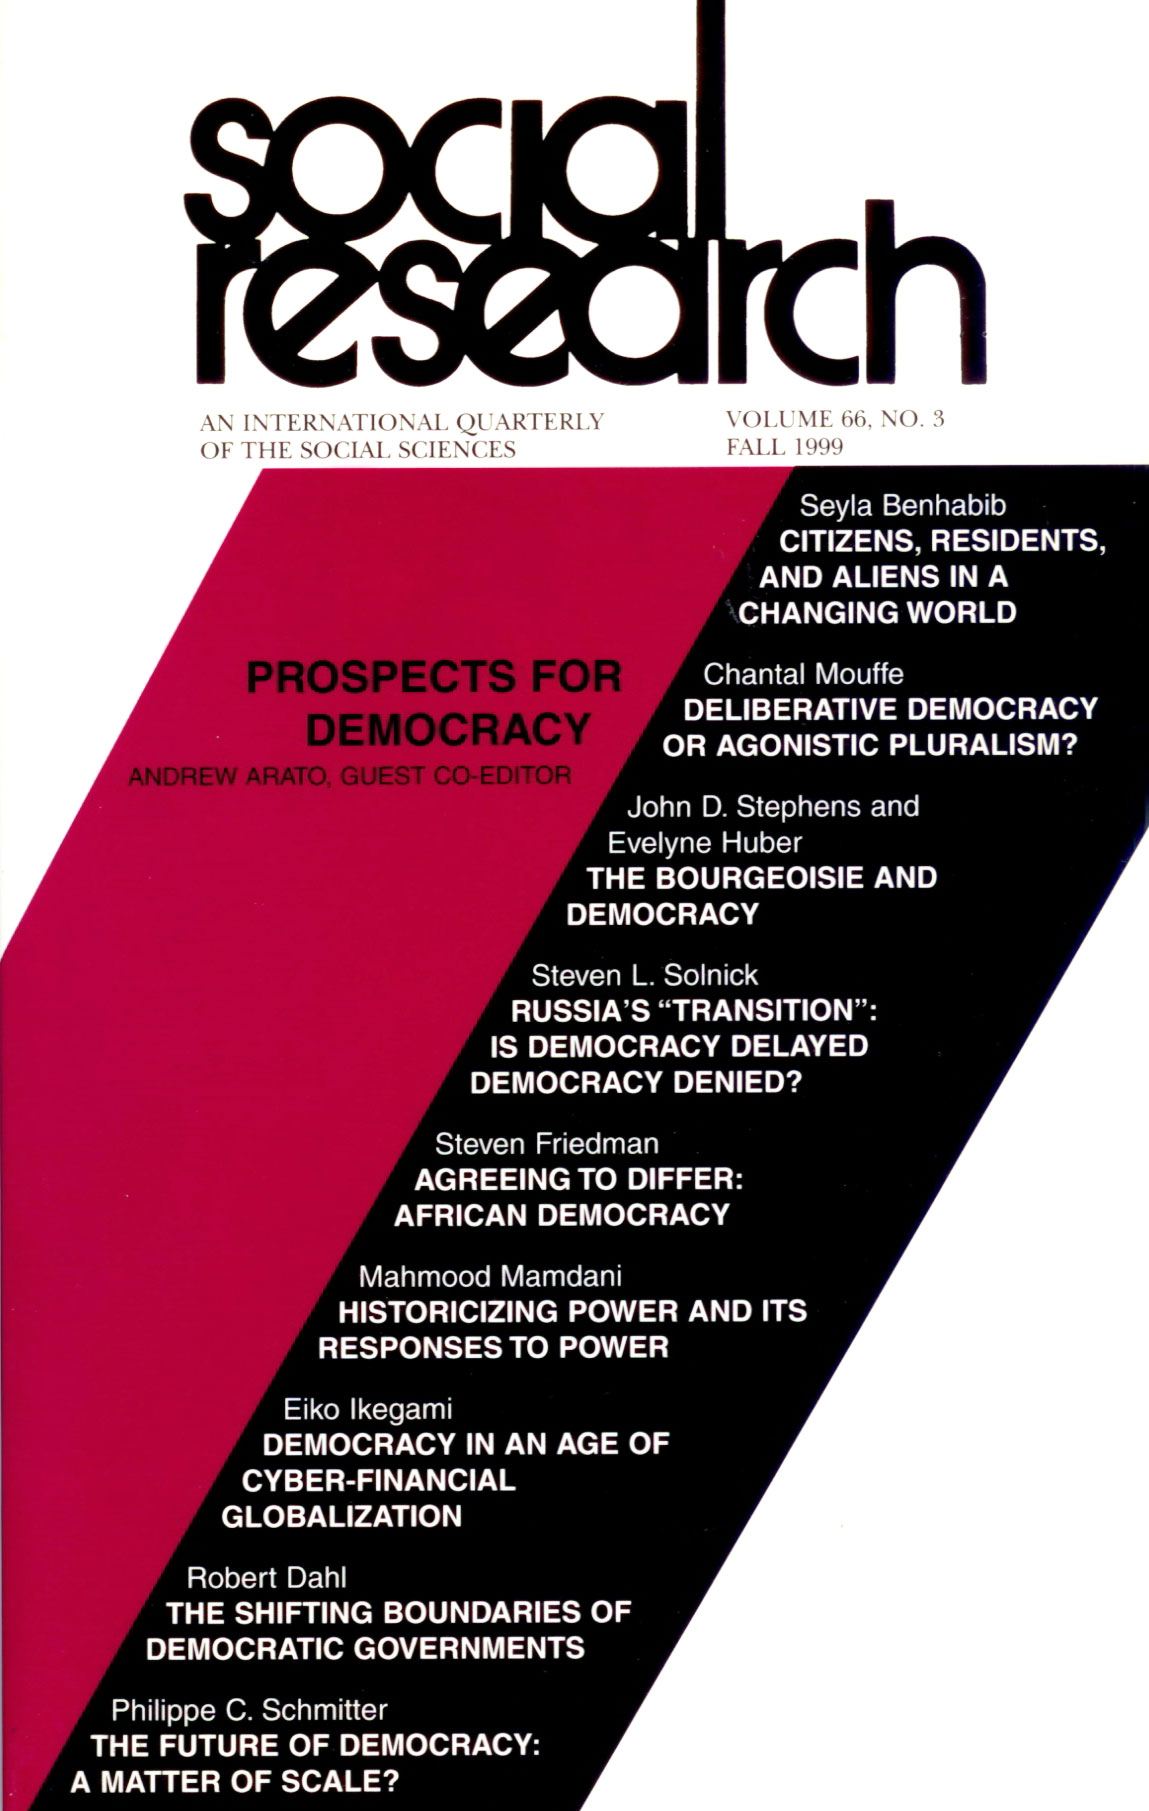 PROSPECTS FOR DEMOCRACY / Vol  66, No  3 (Fall 1999)